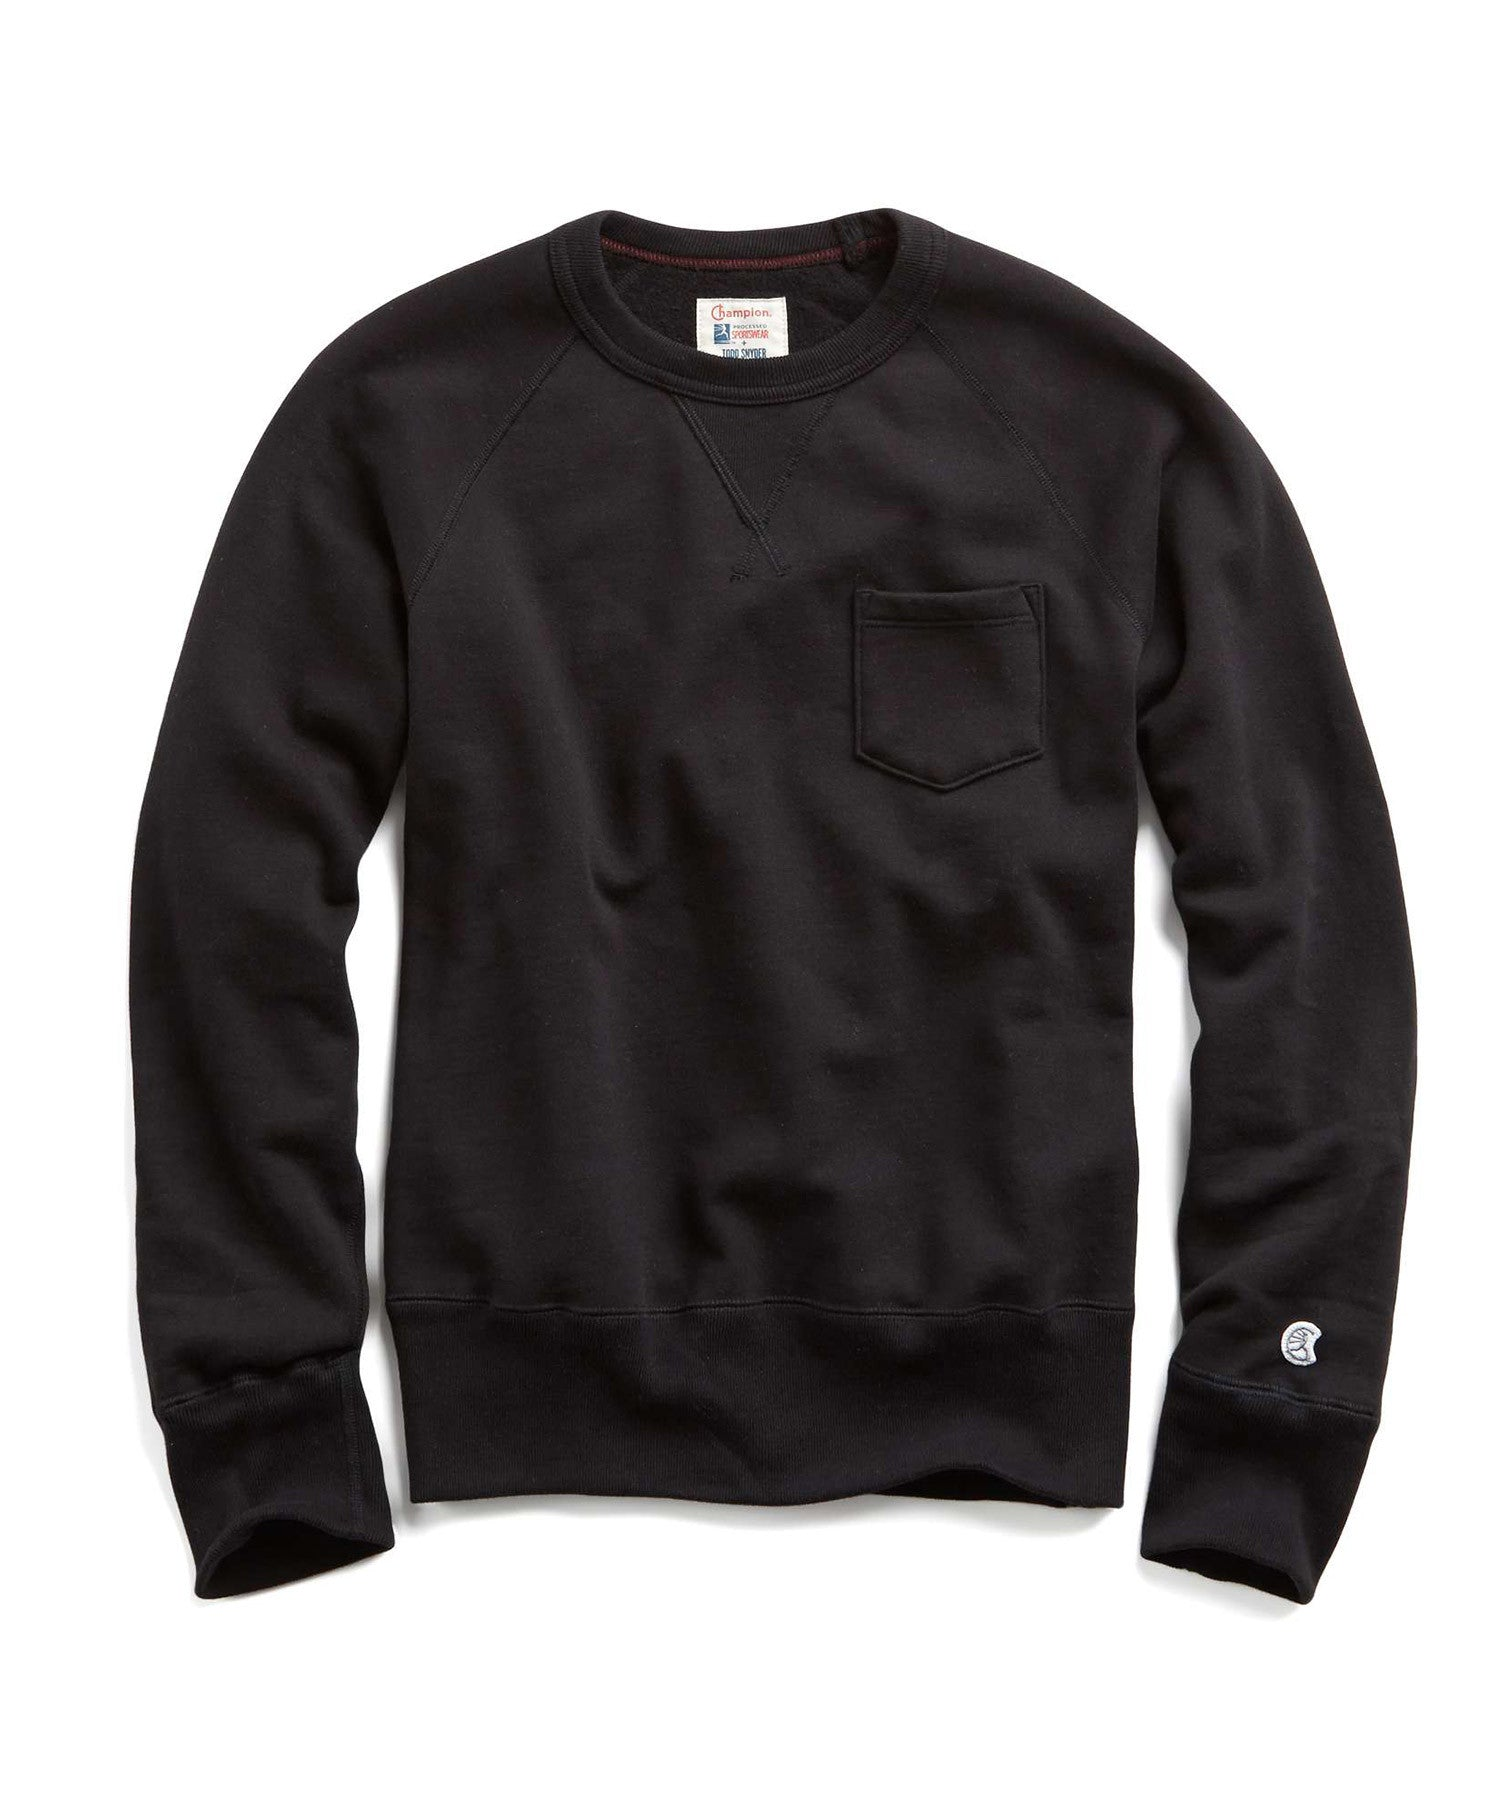 Fleece Pocket Sweatshirt in Black